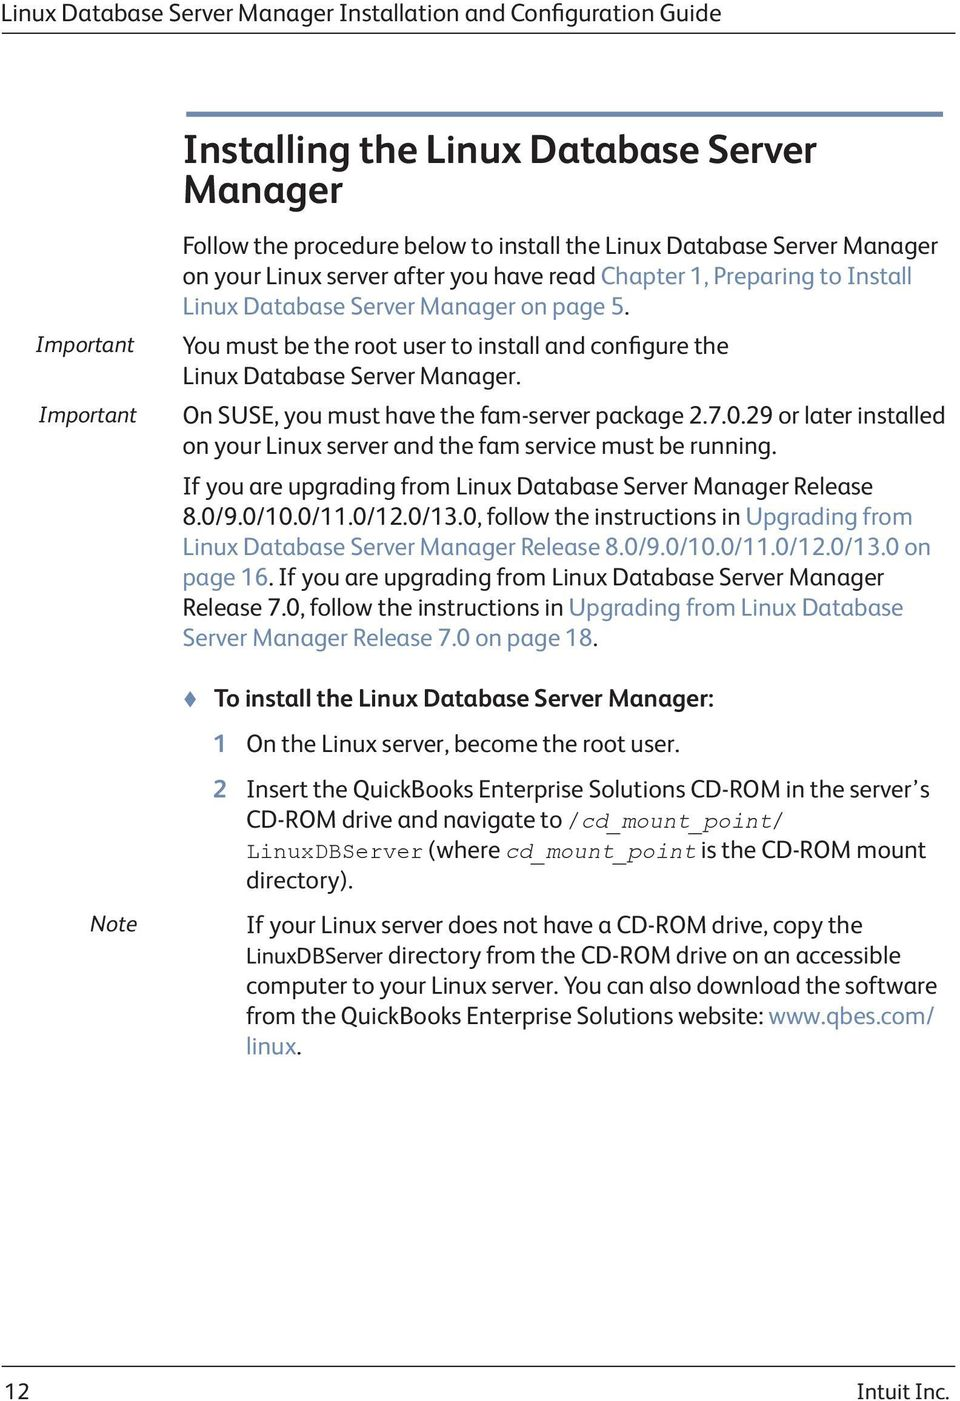 You must be the root user to install and configure the Linux Database Server Manager. On SUSE, you must have the fam-server package 2.7.0.